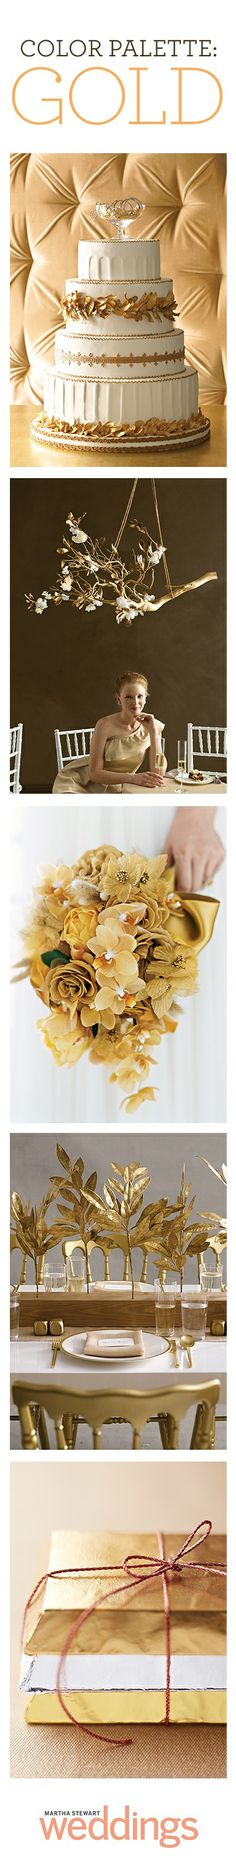 A little golden inspiration for your wedding day. #Wedding Colors,#Perfect Palette, #Wedding Color Palettes, #Palette Library, #Wedding Colors, #Wedding Colours, #Wedding Inspiration, #Wedding Color Scheme,#Gray, #Red, #Blue, #Green, #Yellow, #Orange, #Plum, #Teal, #Pink, #Peach, #Navy Blue, #Bridesmaid, #Bride, #timelesstreasure